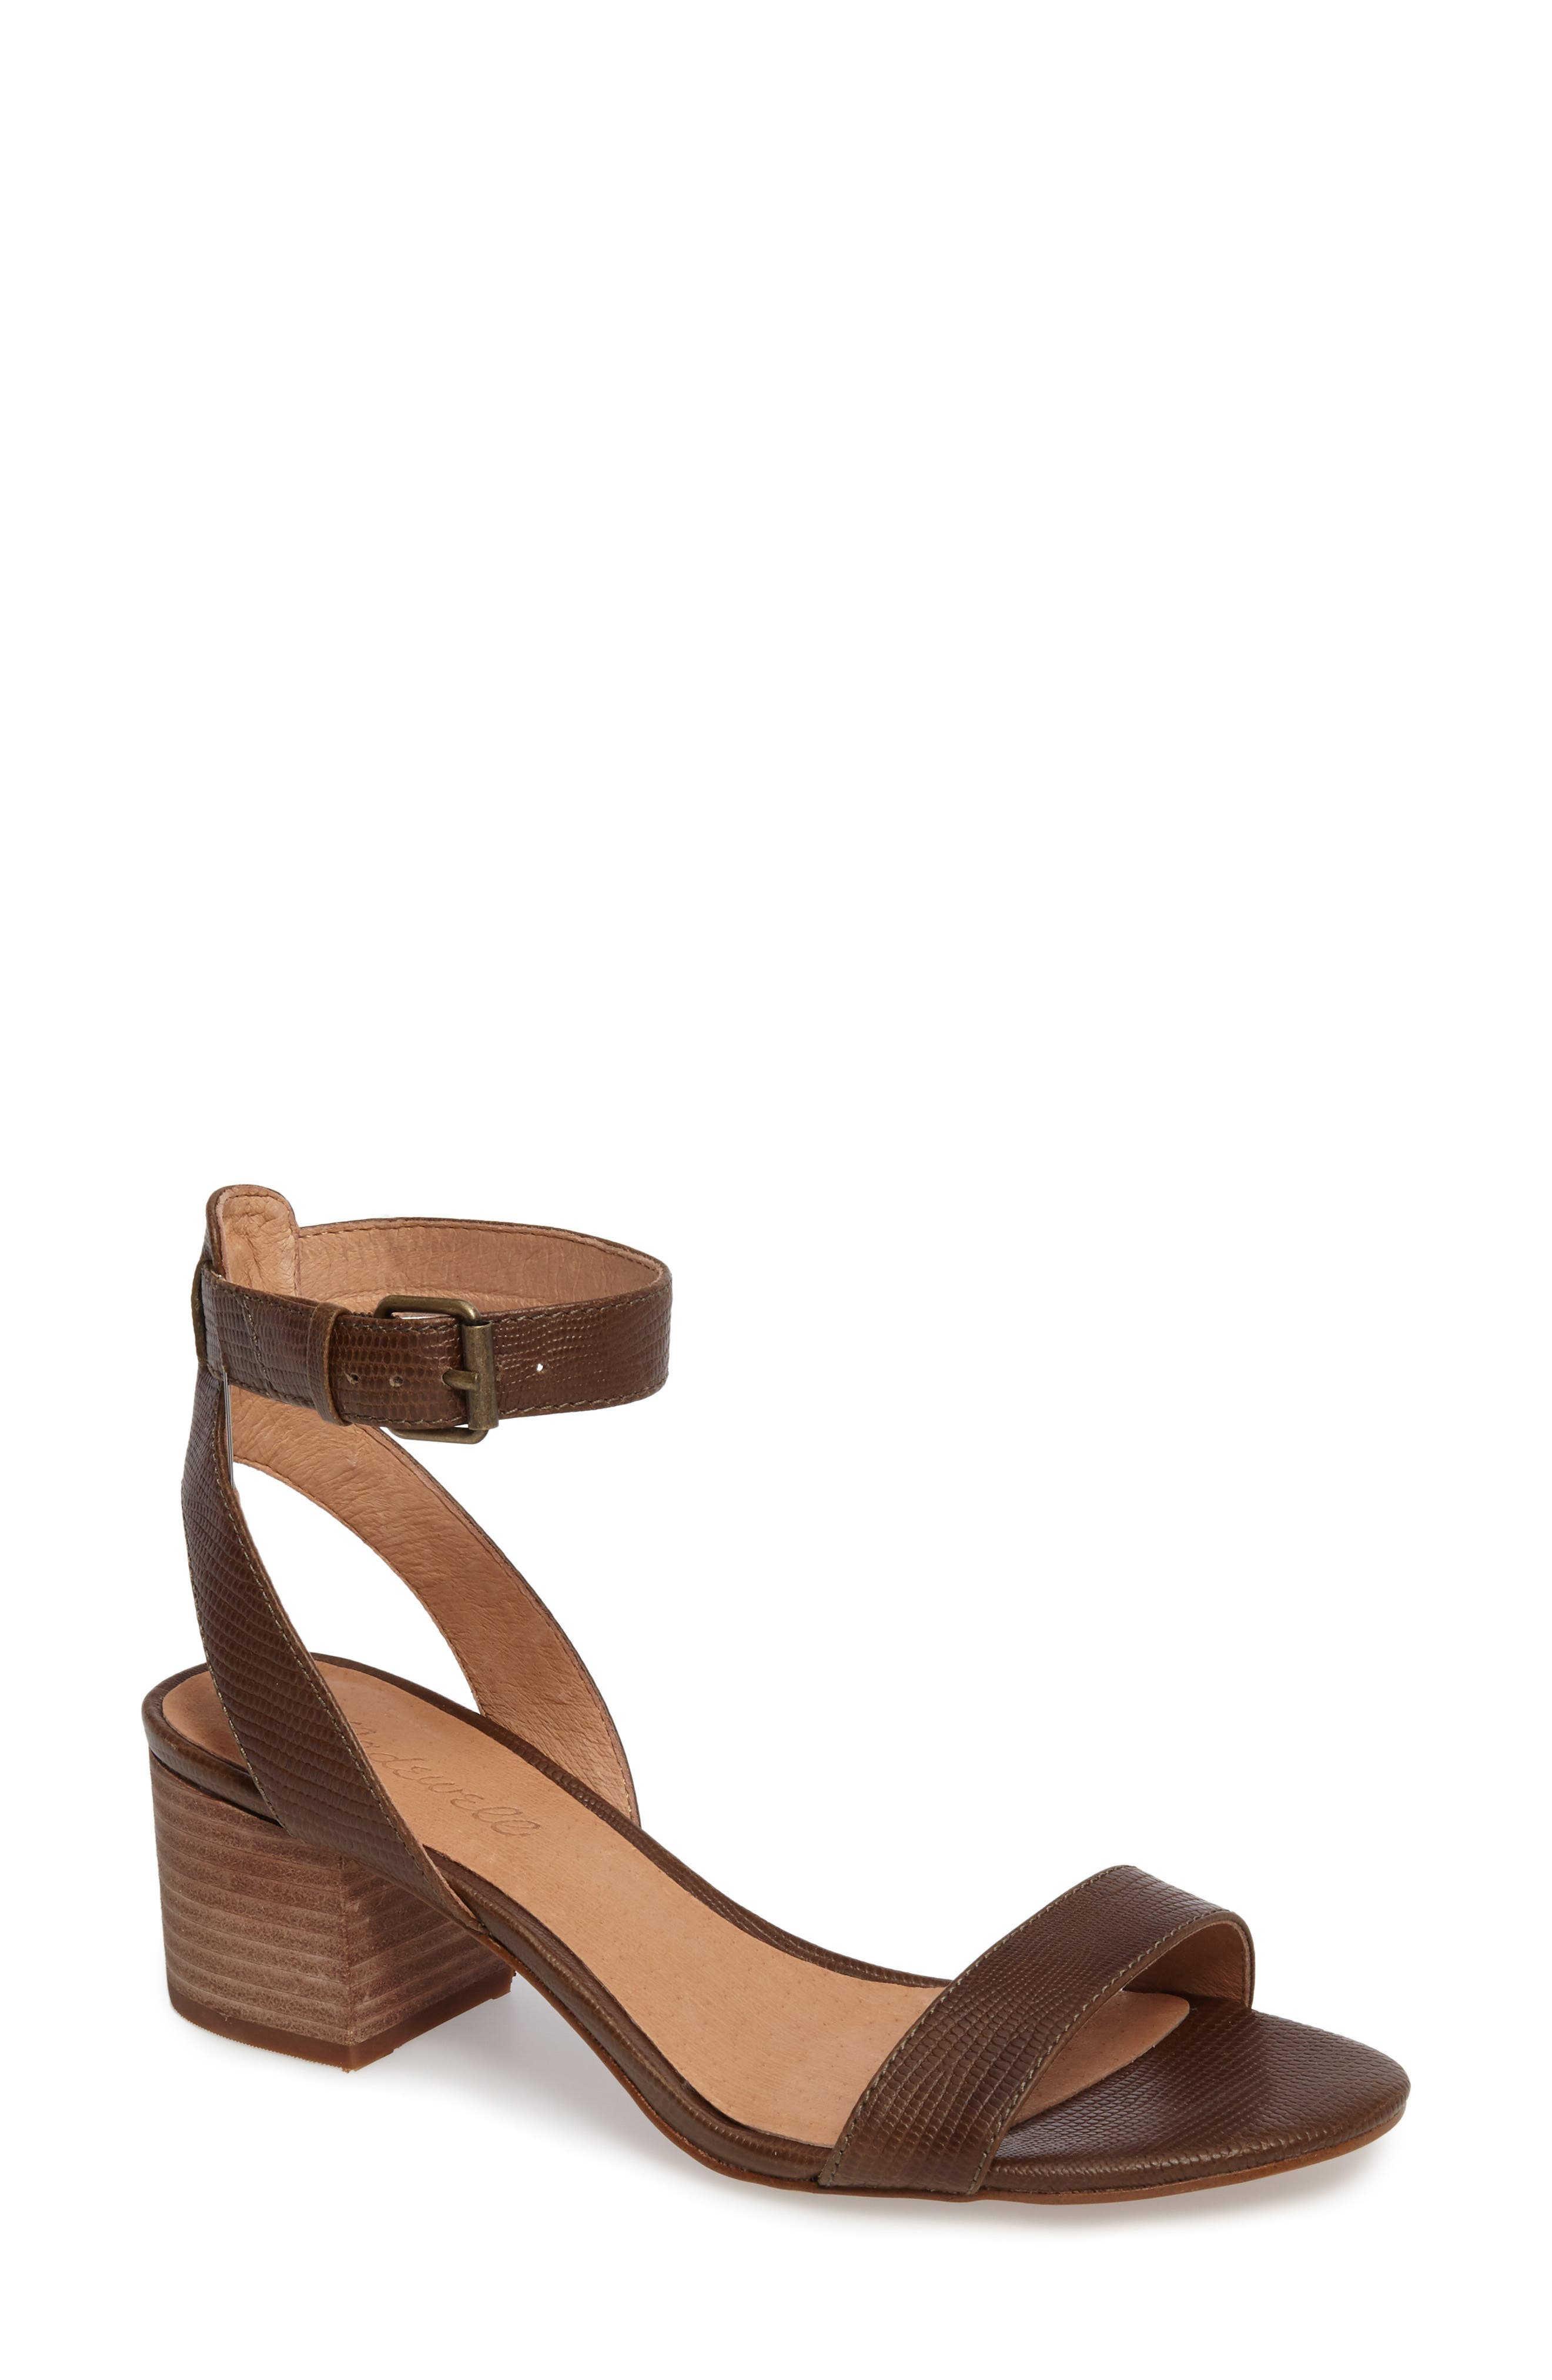 Main Image - Madewell Alice Embossed Ankle Wrap Sandal (Women)